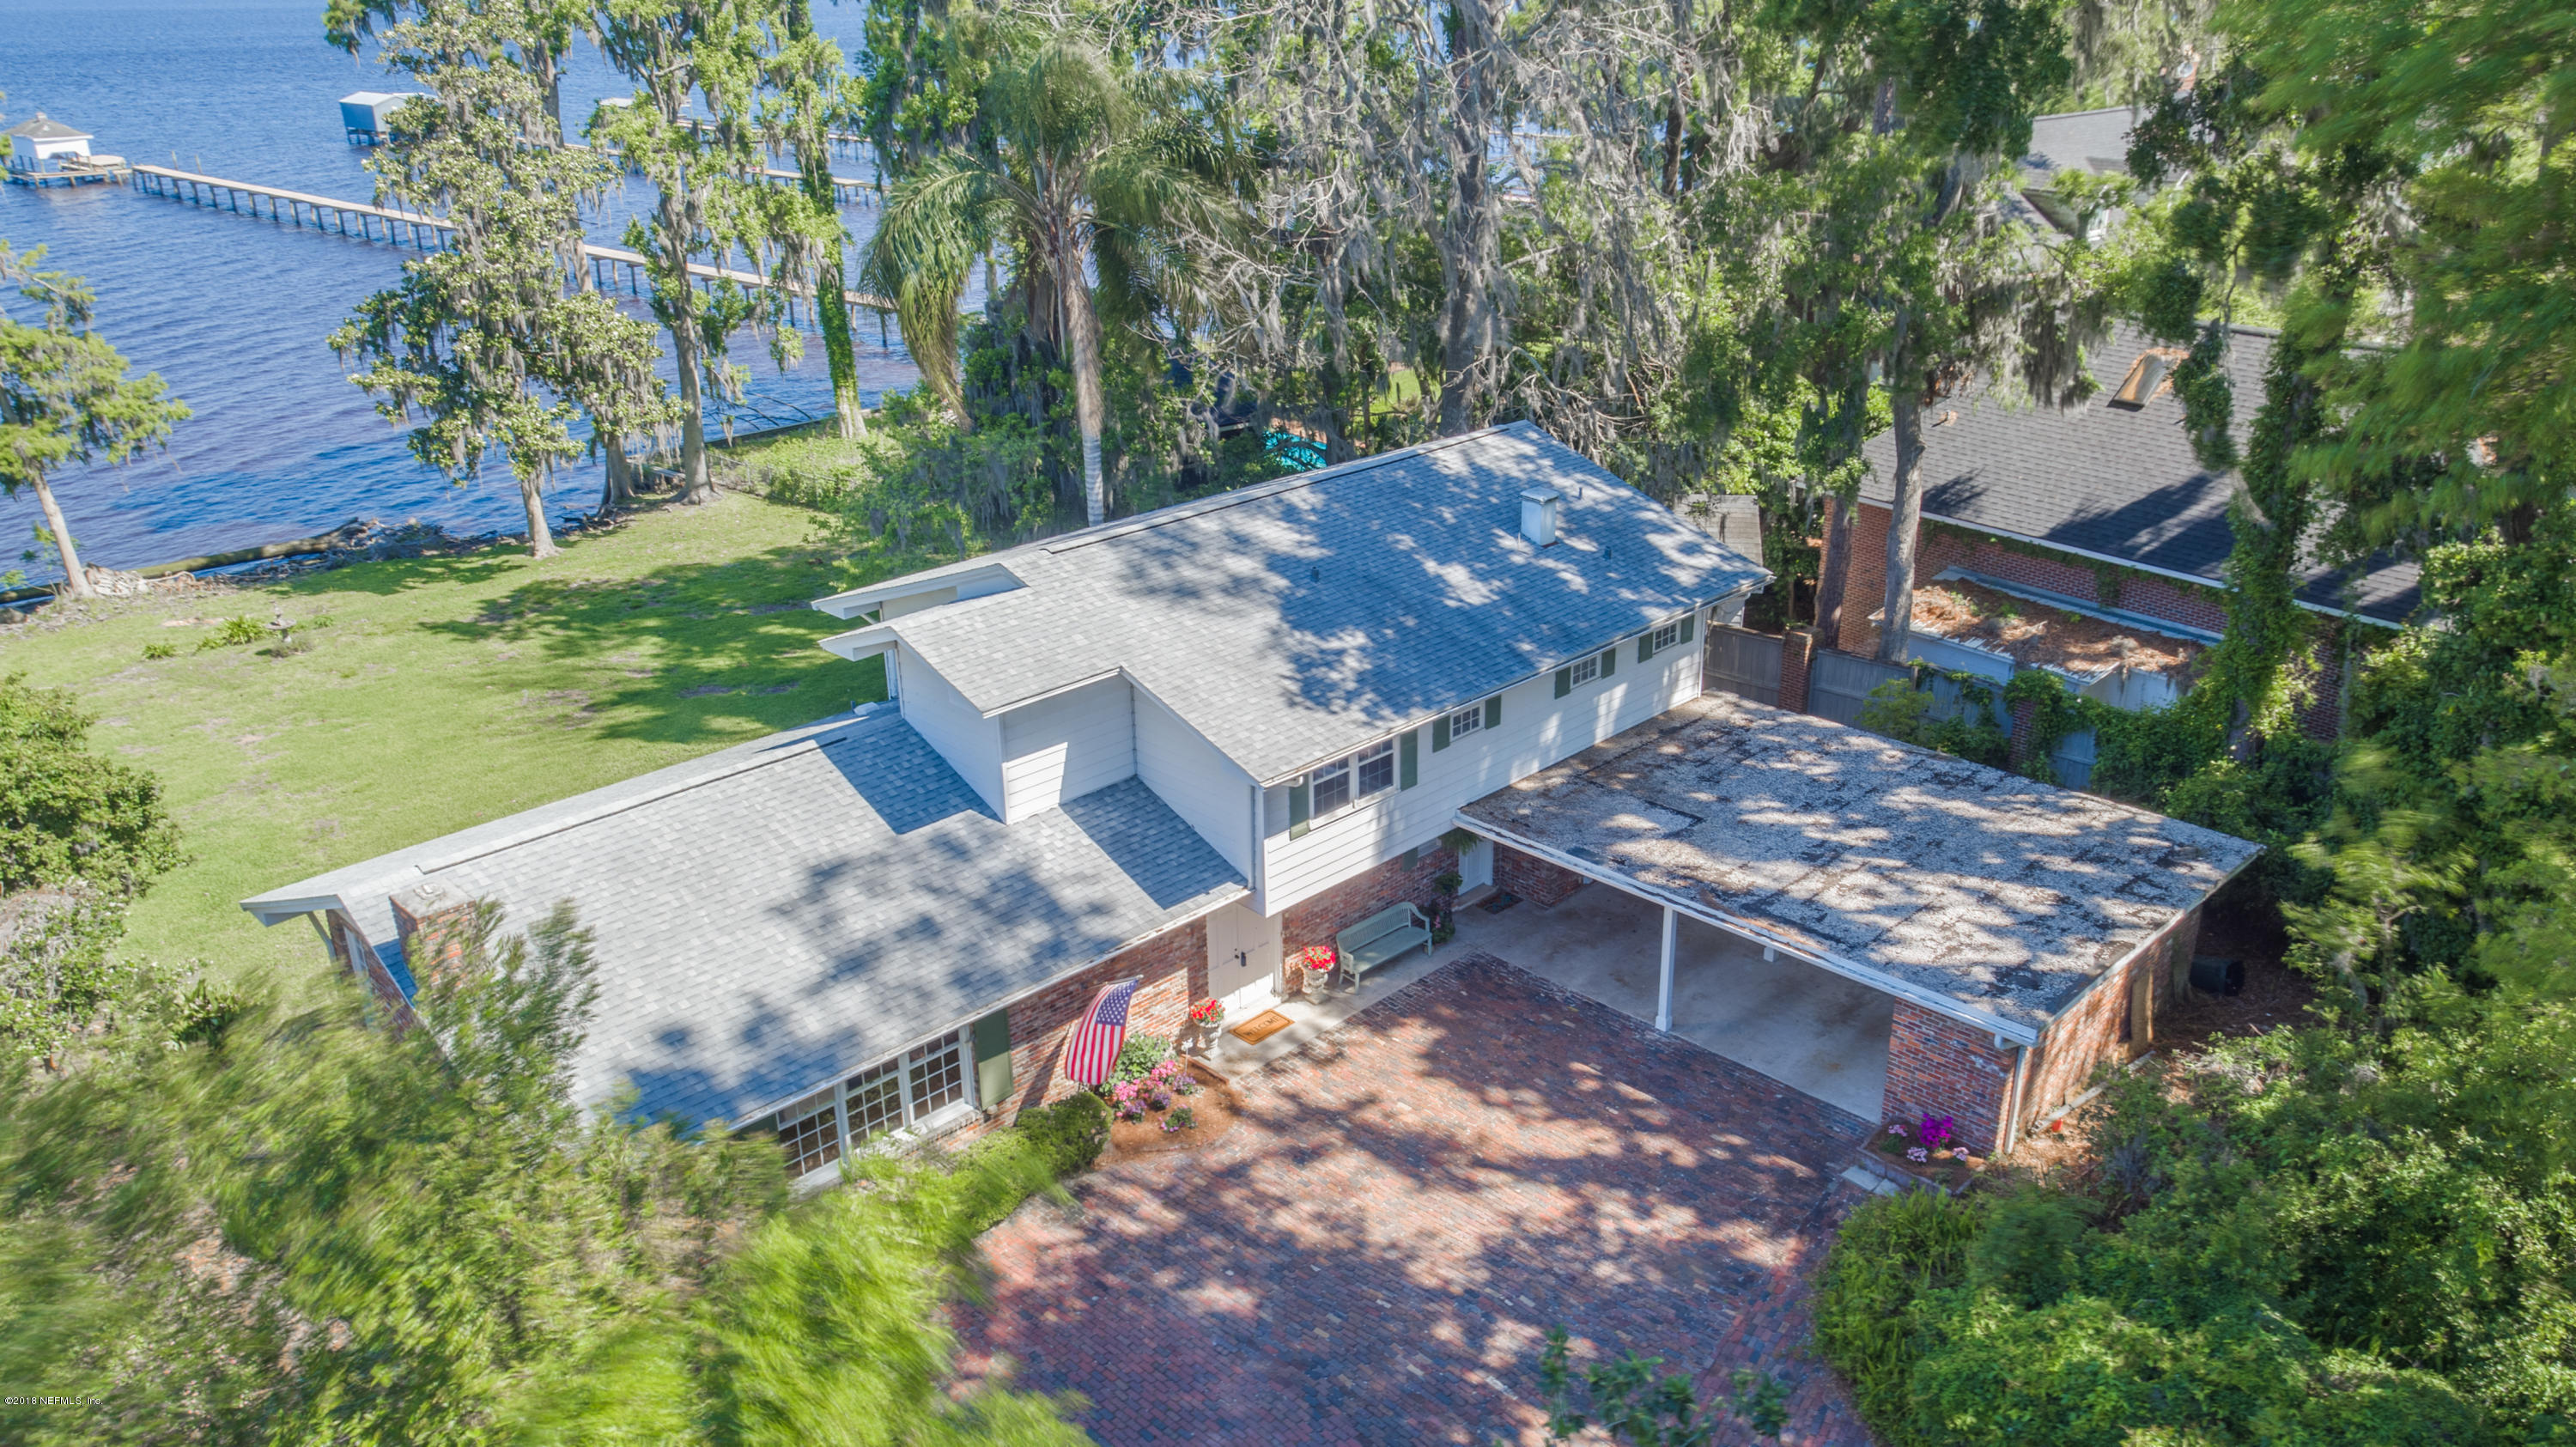 2939 FOREST, JACKSONVILLE, FLORIDA 32257, 4 Bedrooms Bedrooms, ,4 BathroomsBathrooms,Residential - single family,For sale,FOREST,931594